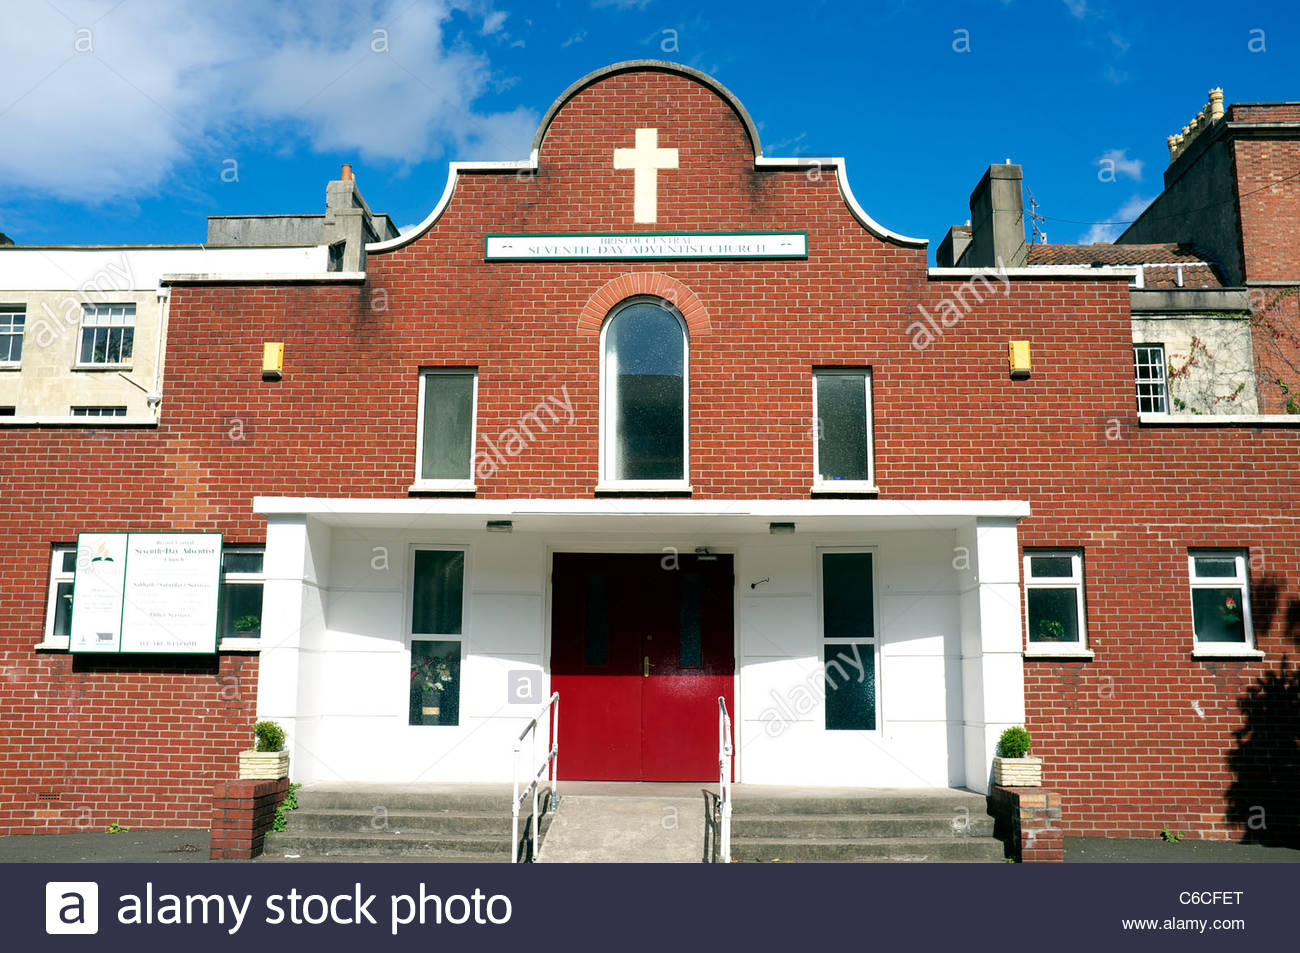 Bristol Central Seventh Day Adventist Church, UK Stock Photo